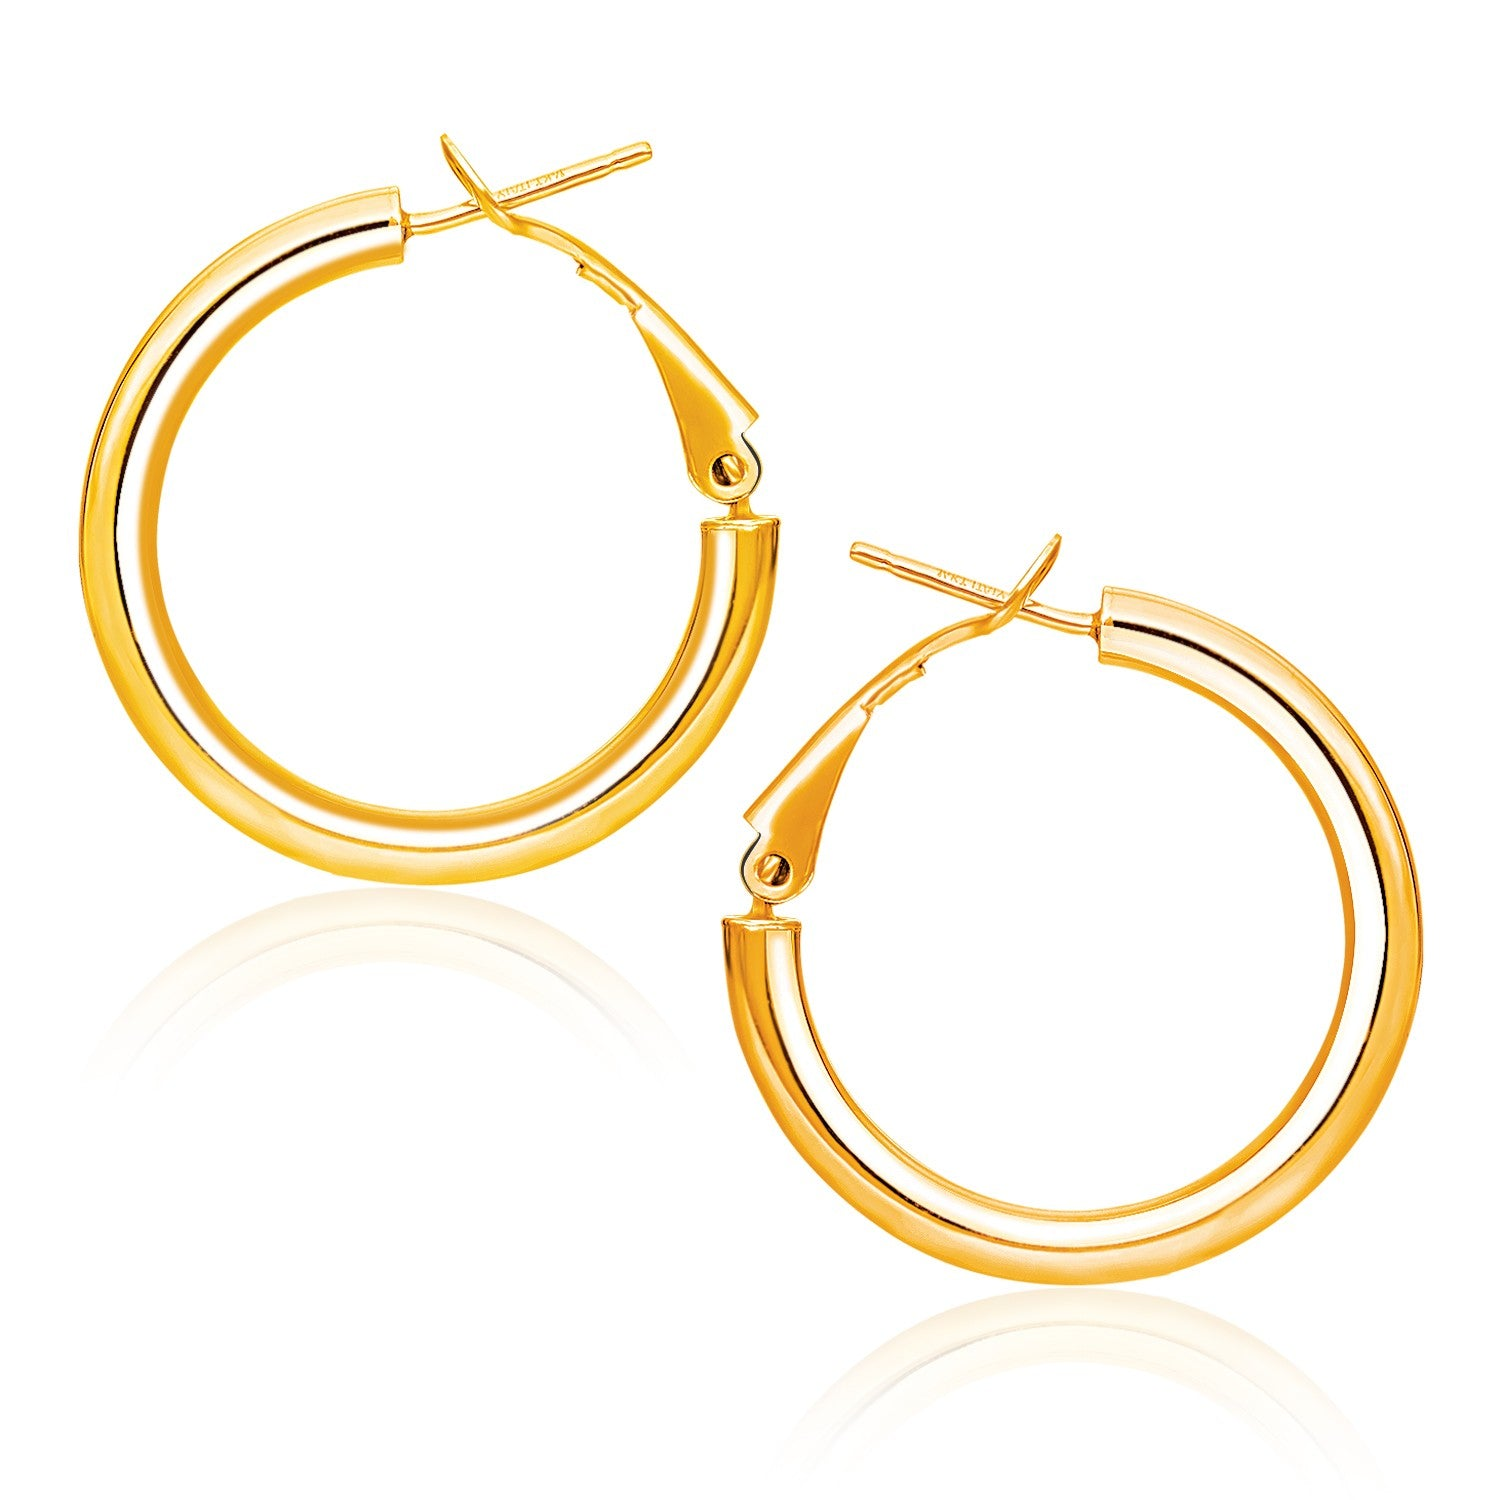 14K Yellow Gold High Polish  Hoop Earrings (0.78 inch Diameter)